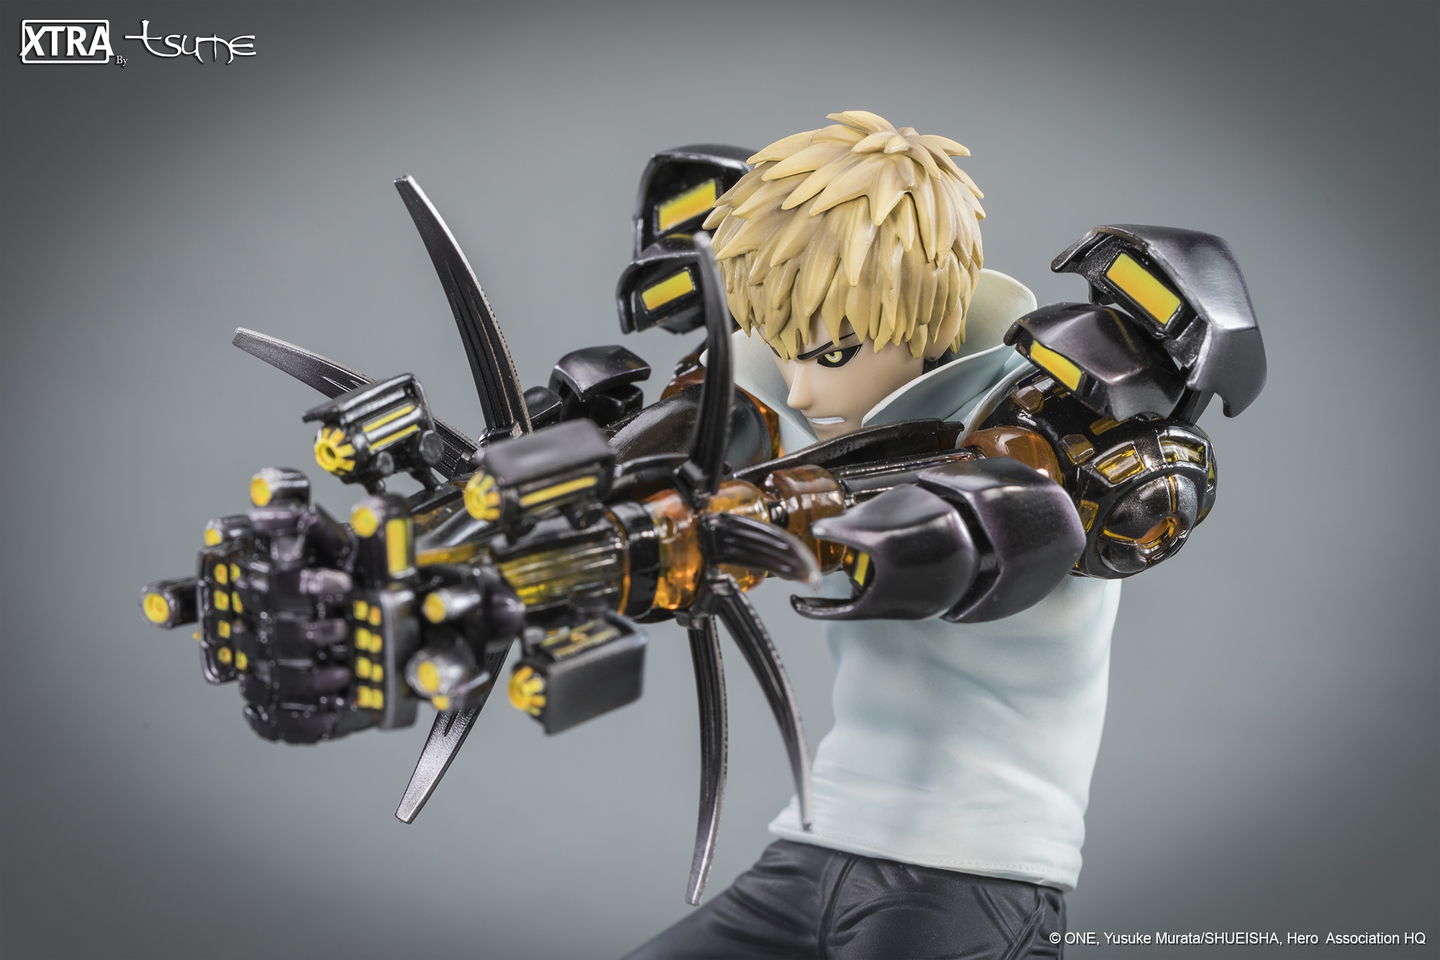 Figurine One Punch Man XTRA Tsume Genos 15cm 1001 Figurines 8